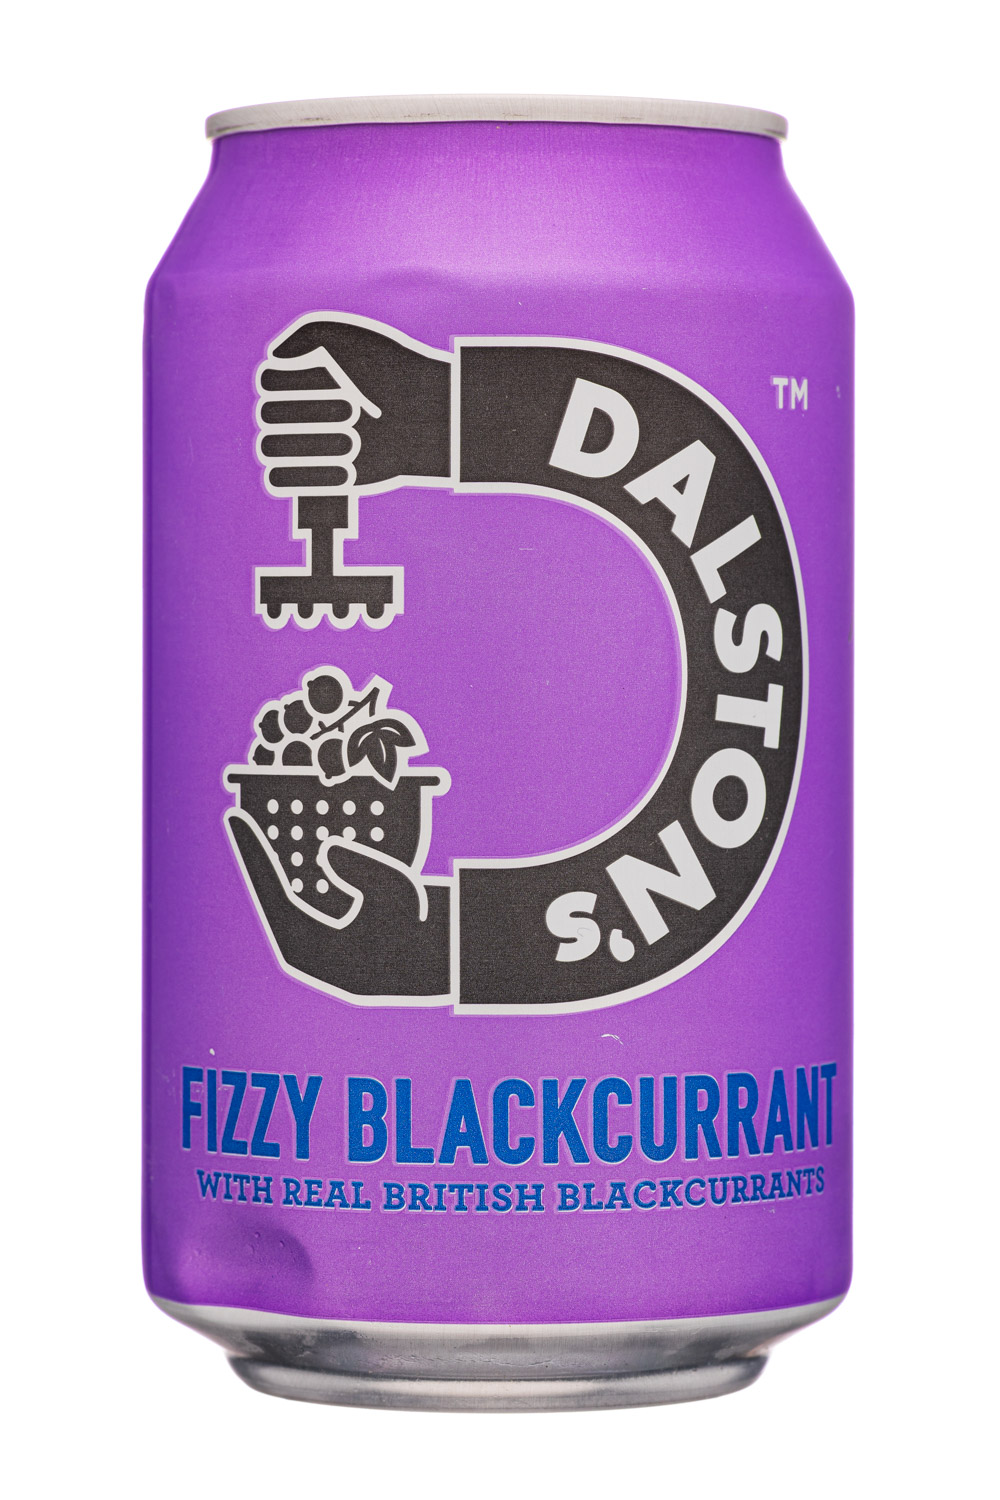 Fizzy Blackcurrant